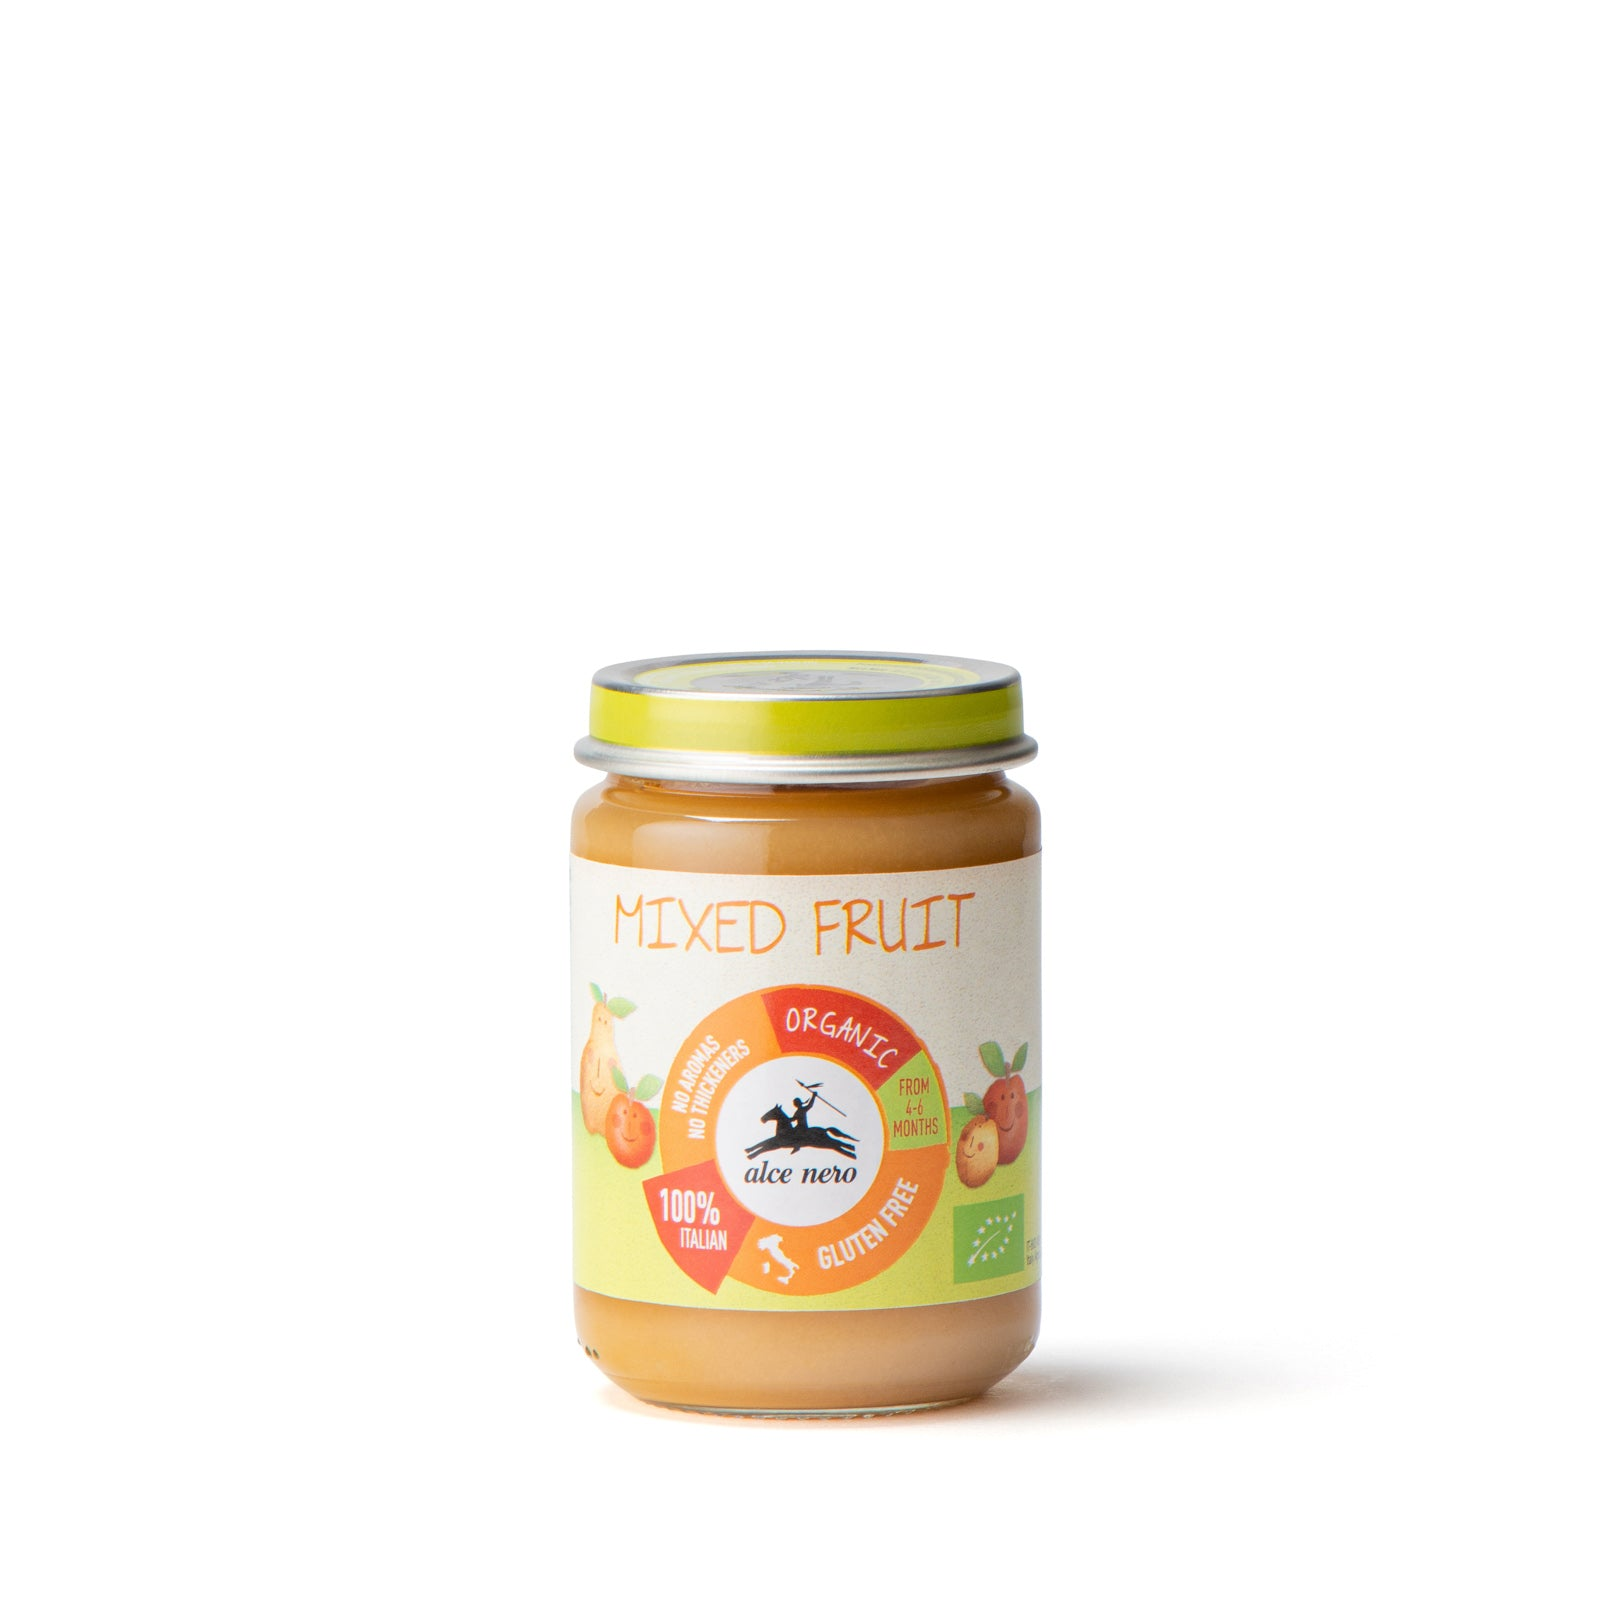 Organic mixed fruits puree  - BFFM140IN